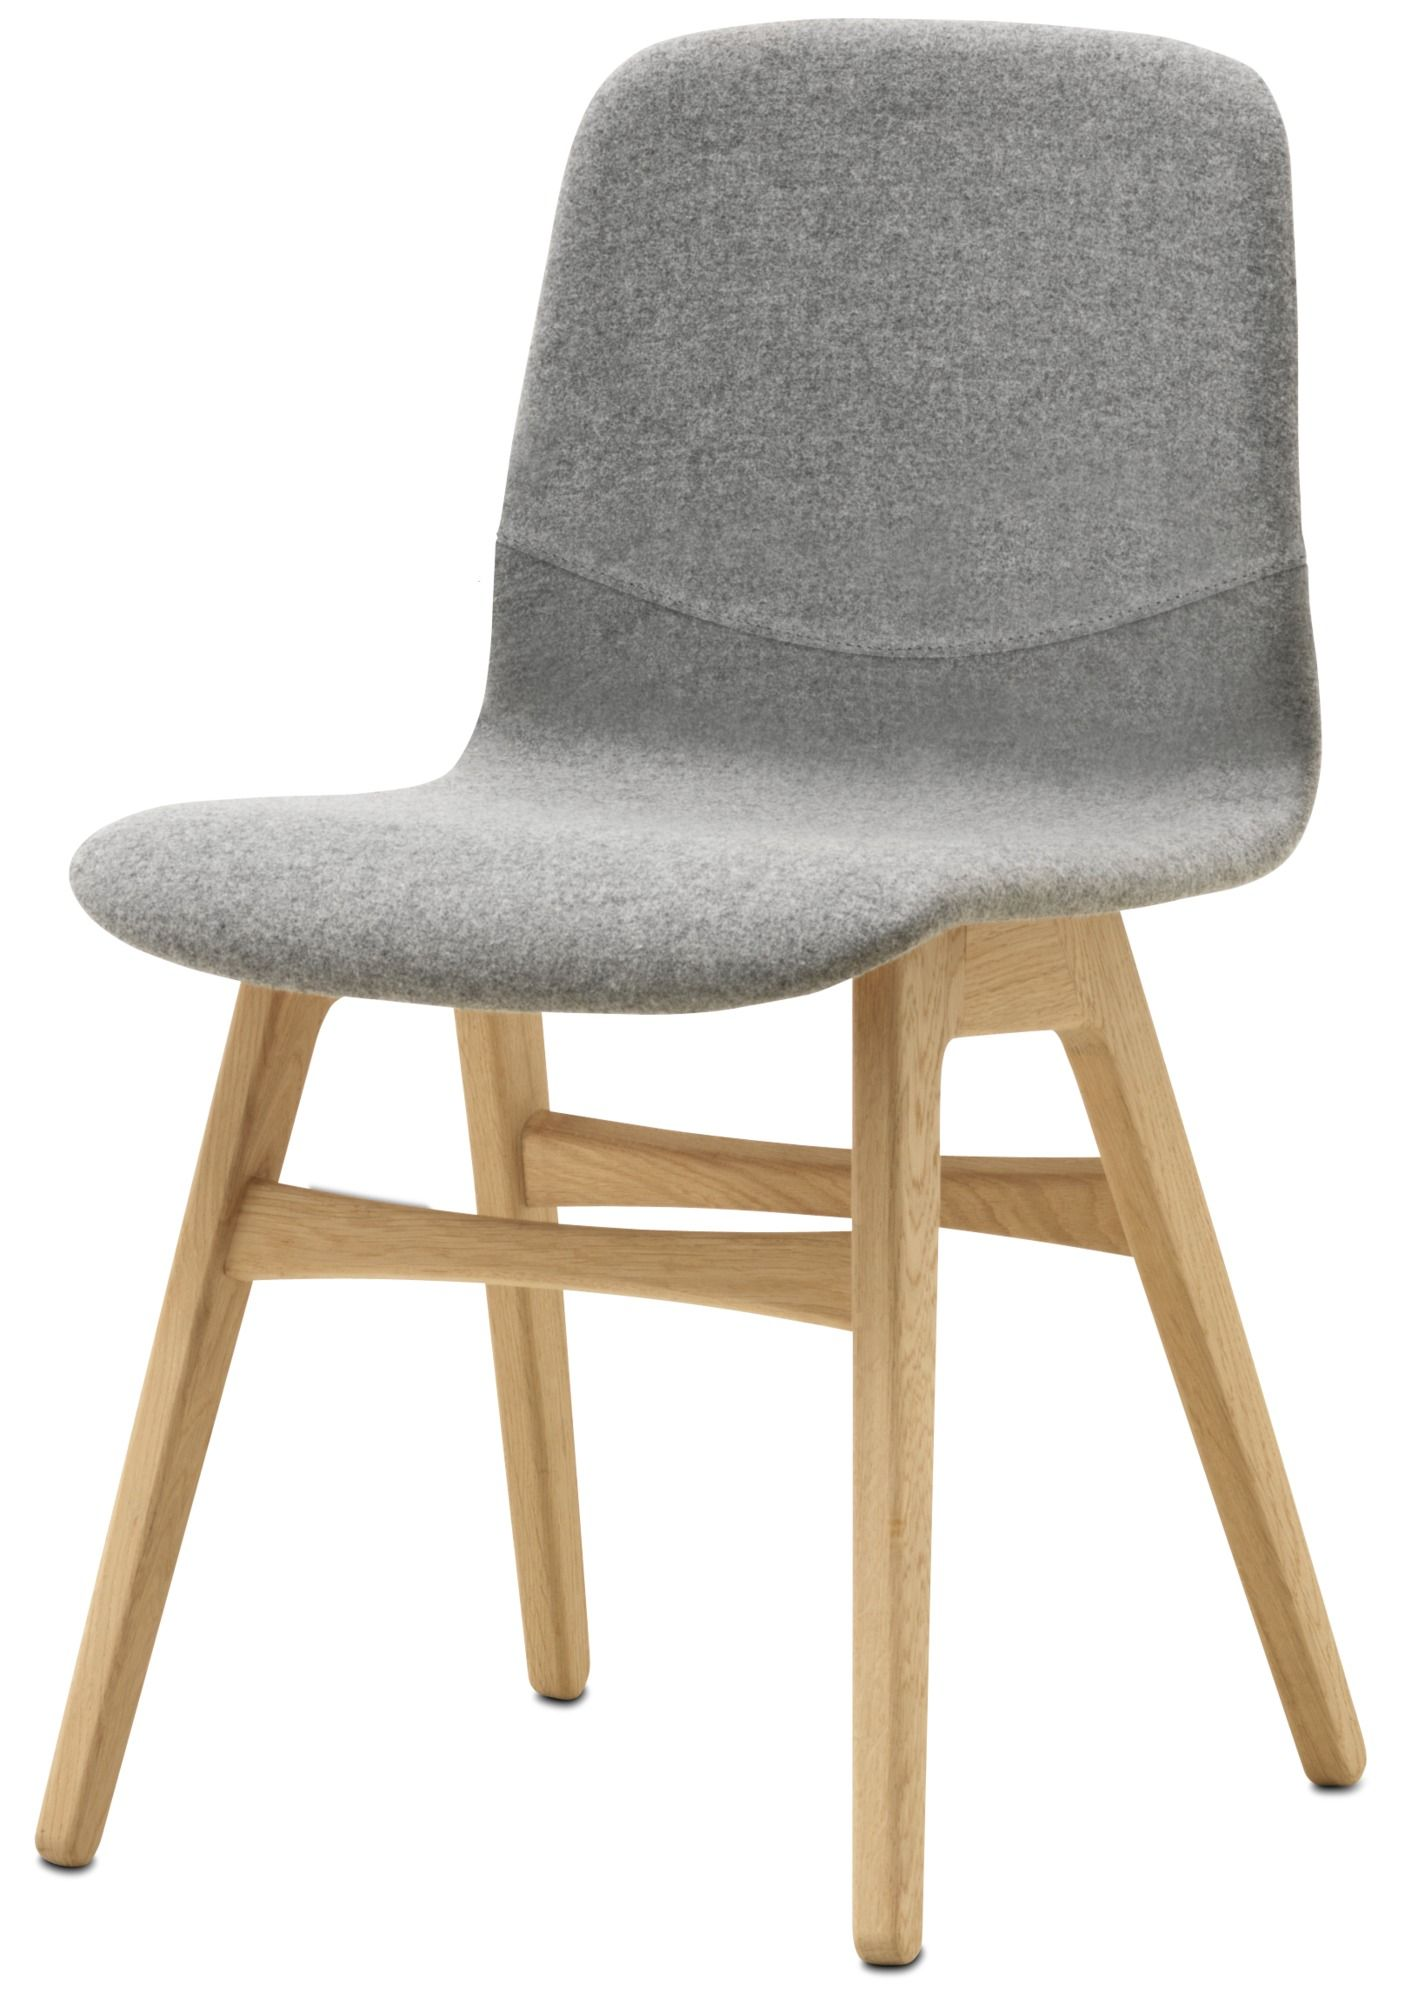 Modern Dining Chairs, Designer Dining Chairs   BoConcept Furniture Sydney  Australia